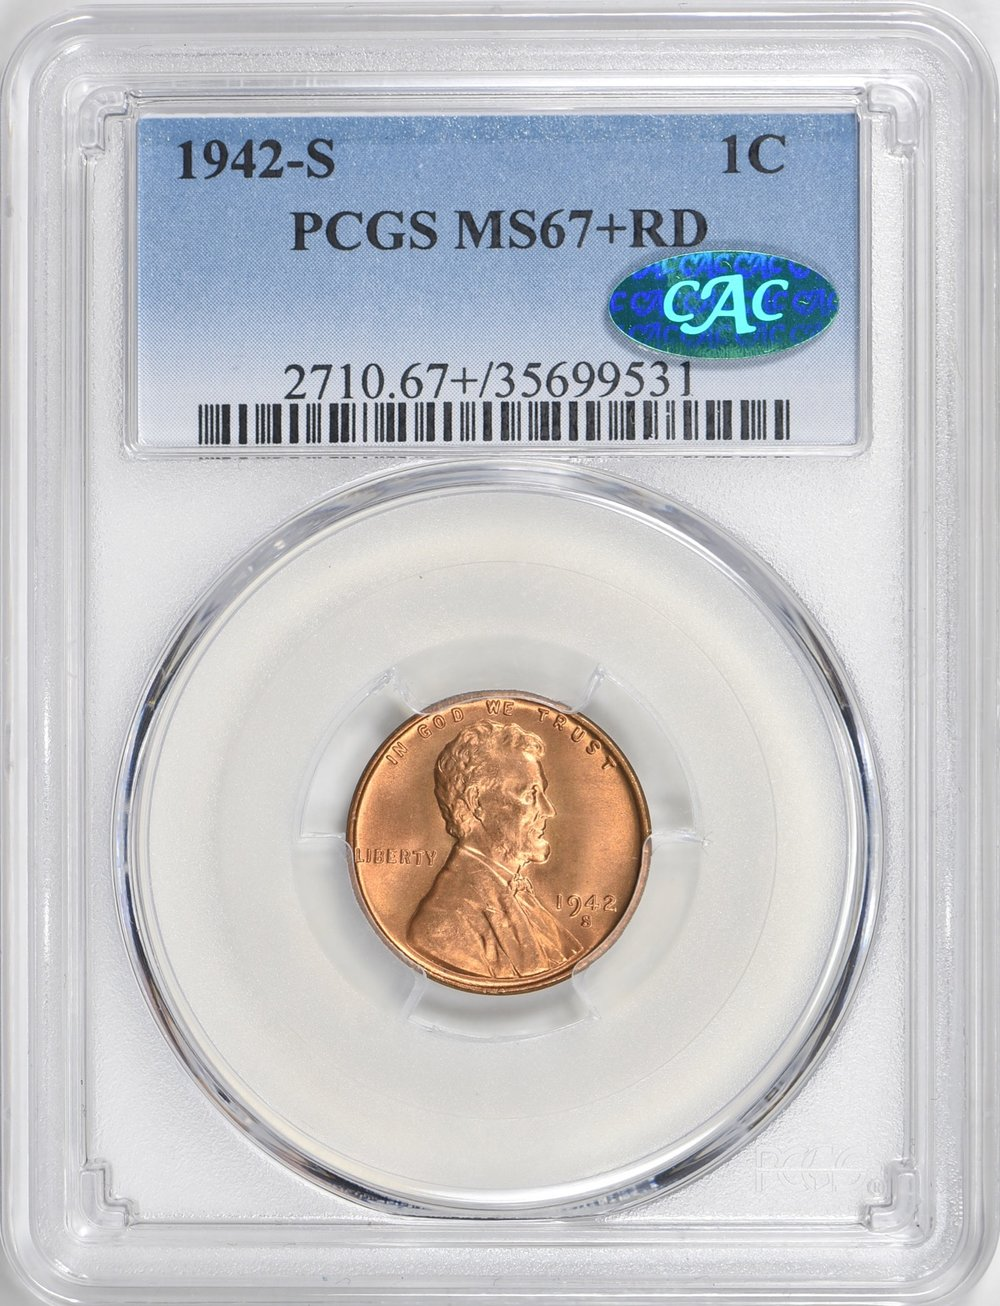 1942-S MS67+RD CAC - Acquired GreatCollections auction 7/1/2018. This is the third 67+ CAC I've owned. I keep finding ones I like better. The first one I made $85 on when I sold but the second I think I overpaid for so expecting a loss. Lesson is only buy what you really love! Note the quality of this image versus the HA image of the 1913-D below.